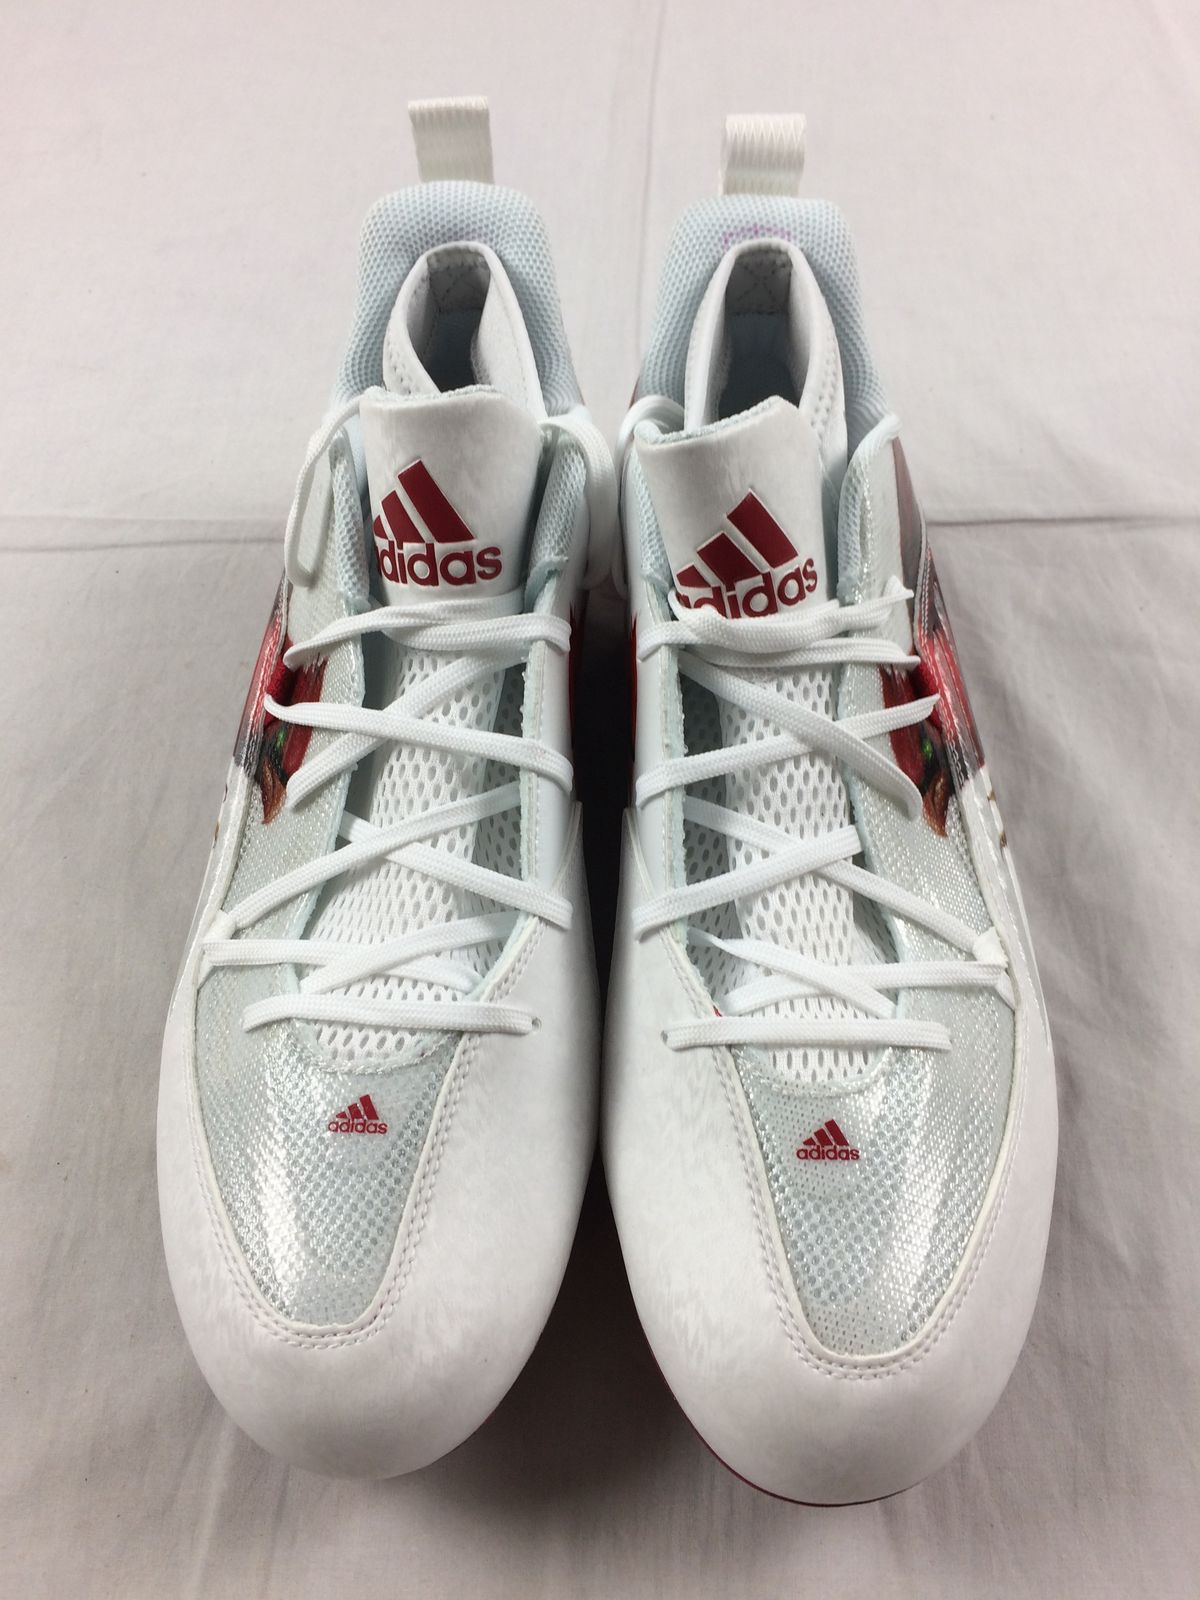 New Adidas Techfit Quickframe Low Red White Cleats Men